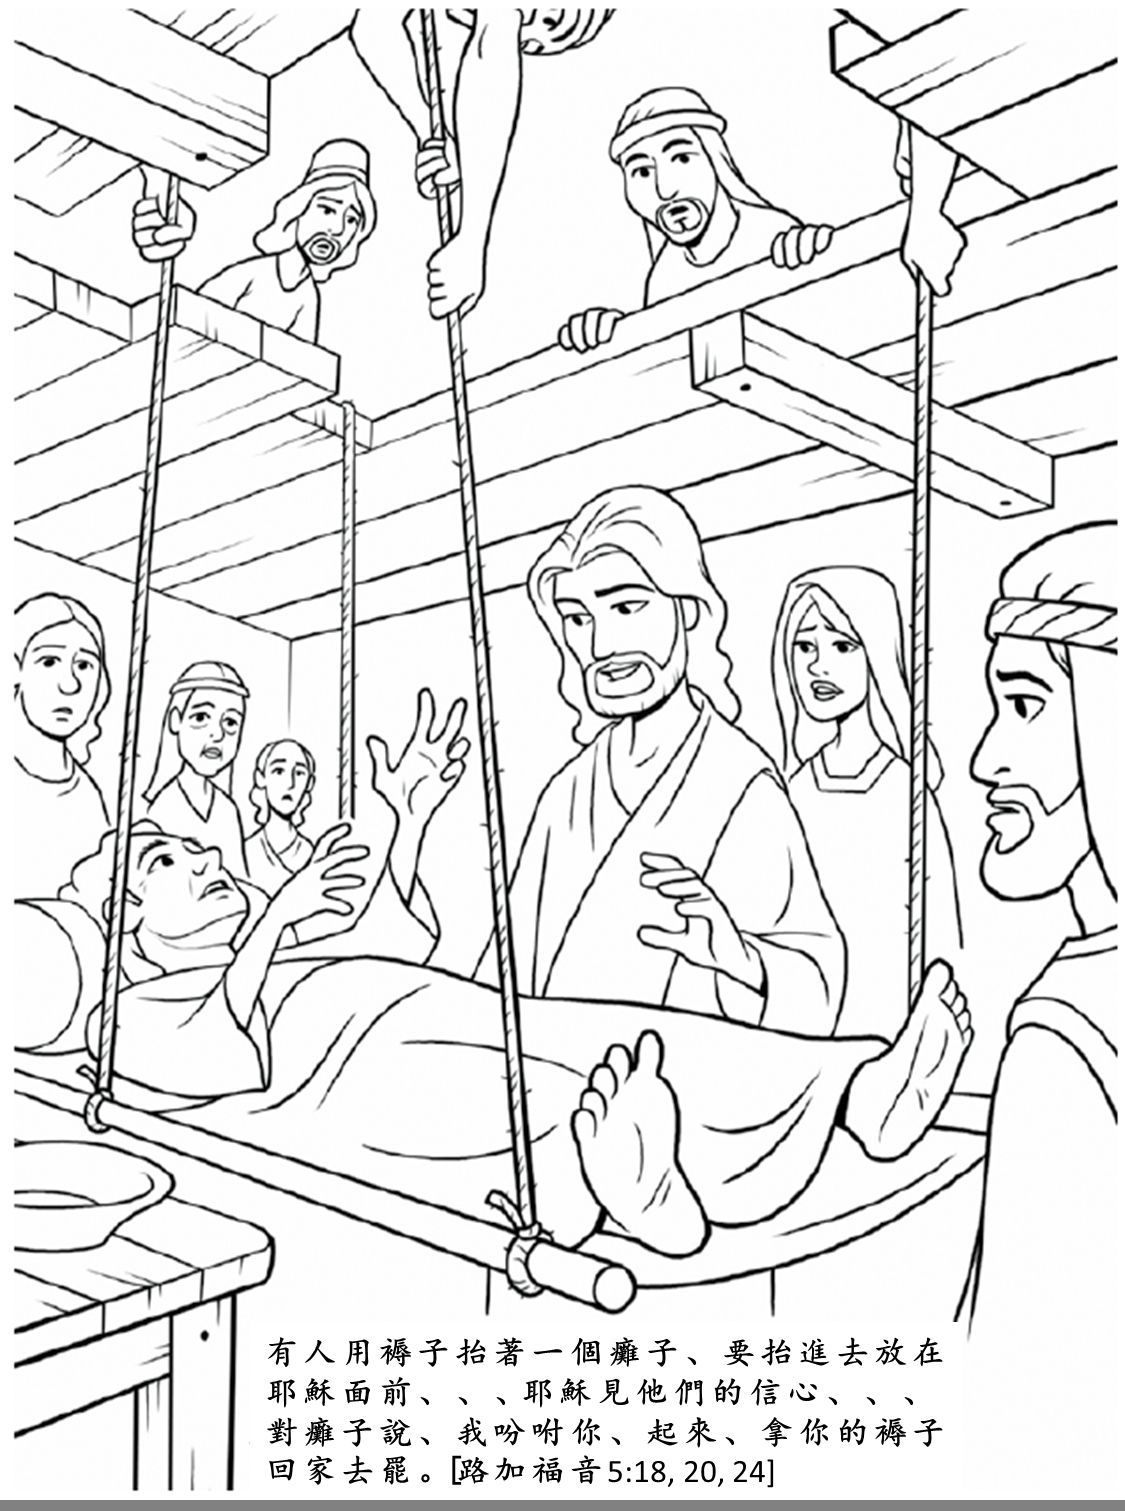 coloring jesus a gift for jesus catholicbraincom coloring jesus